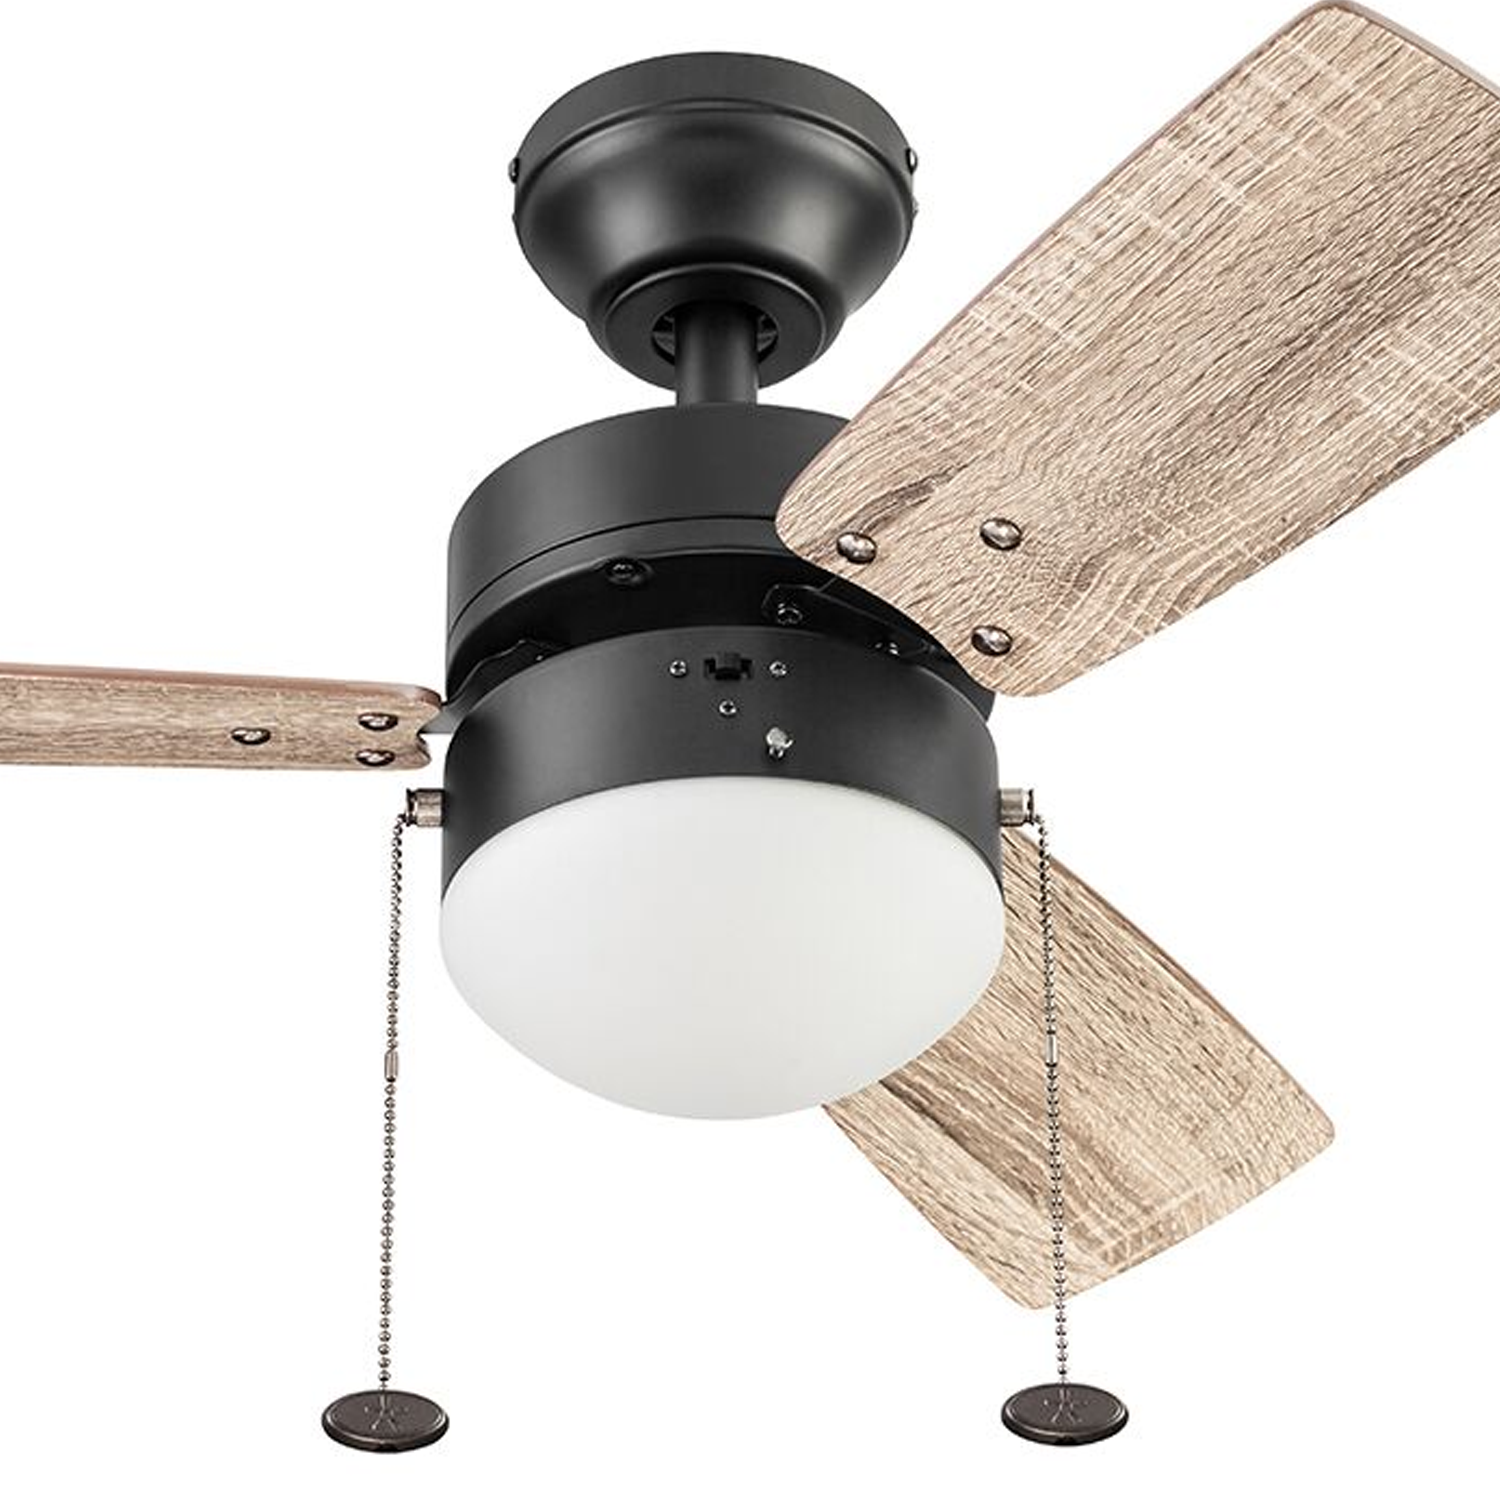 Better Homes Gardens 30 Oil Rubbed Bronze 3 Blade Ceiling Fan Walmart Com Walmart Com